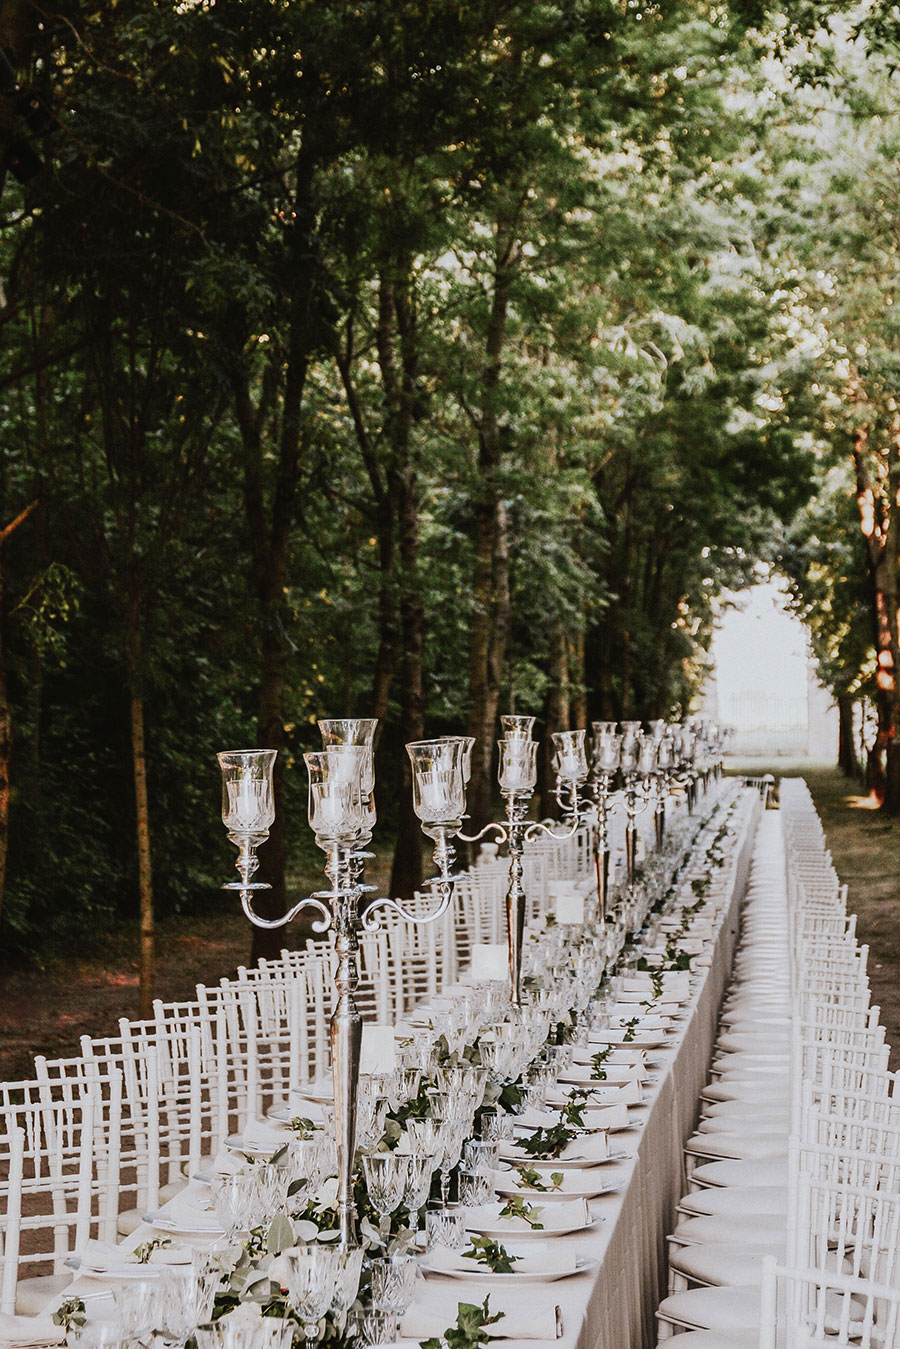 A Wonderful Garden Wedding With Dinner In The Woods!0050